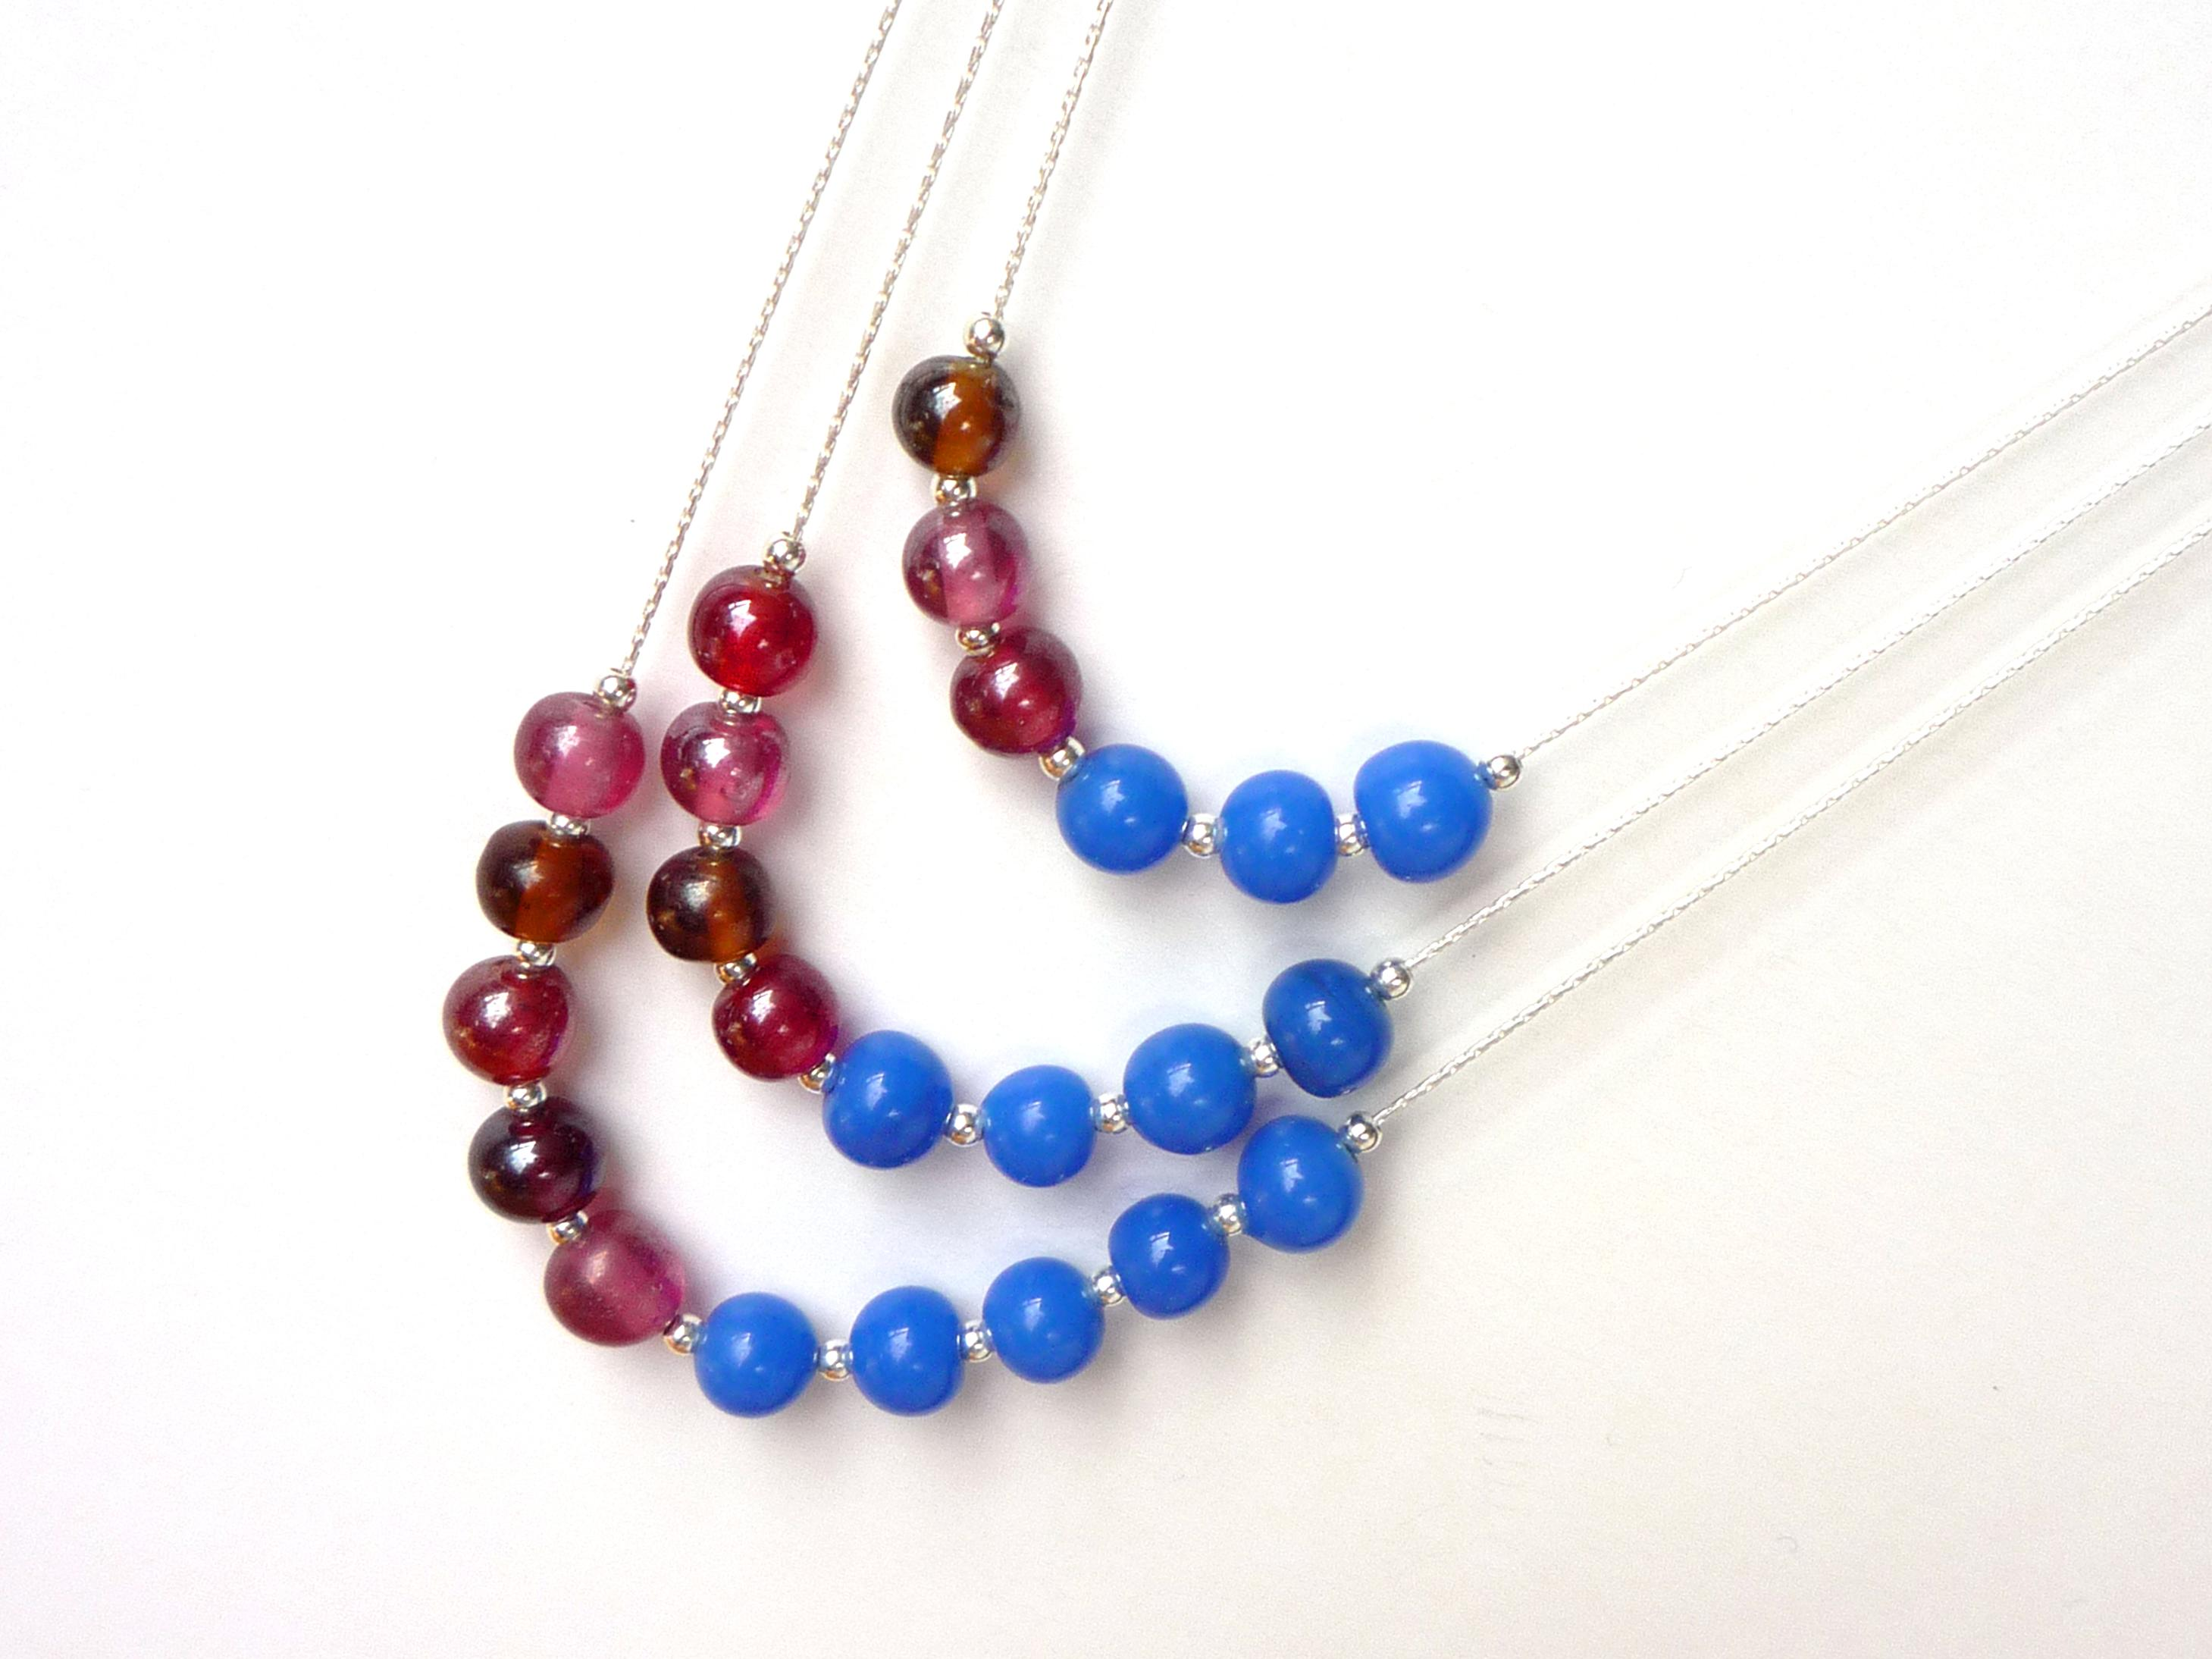 3 layer beaded necklaces | the Little Koo blog